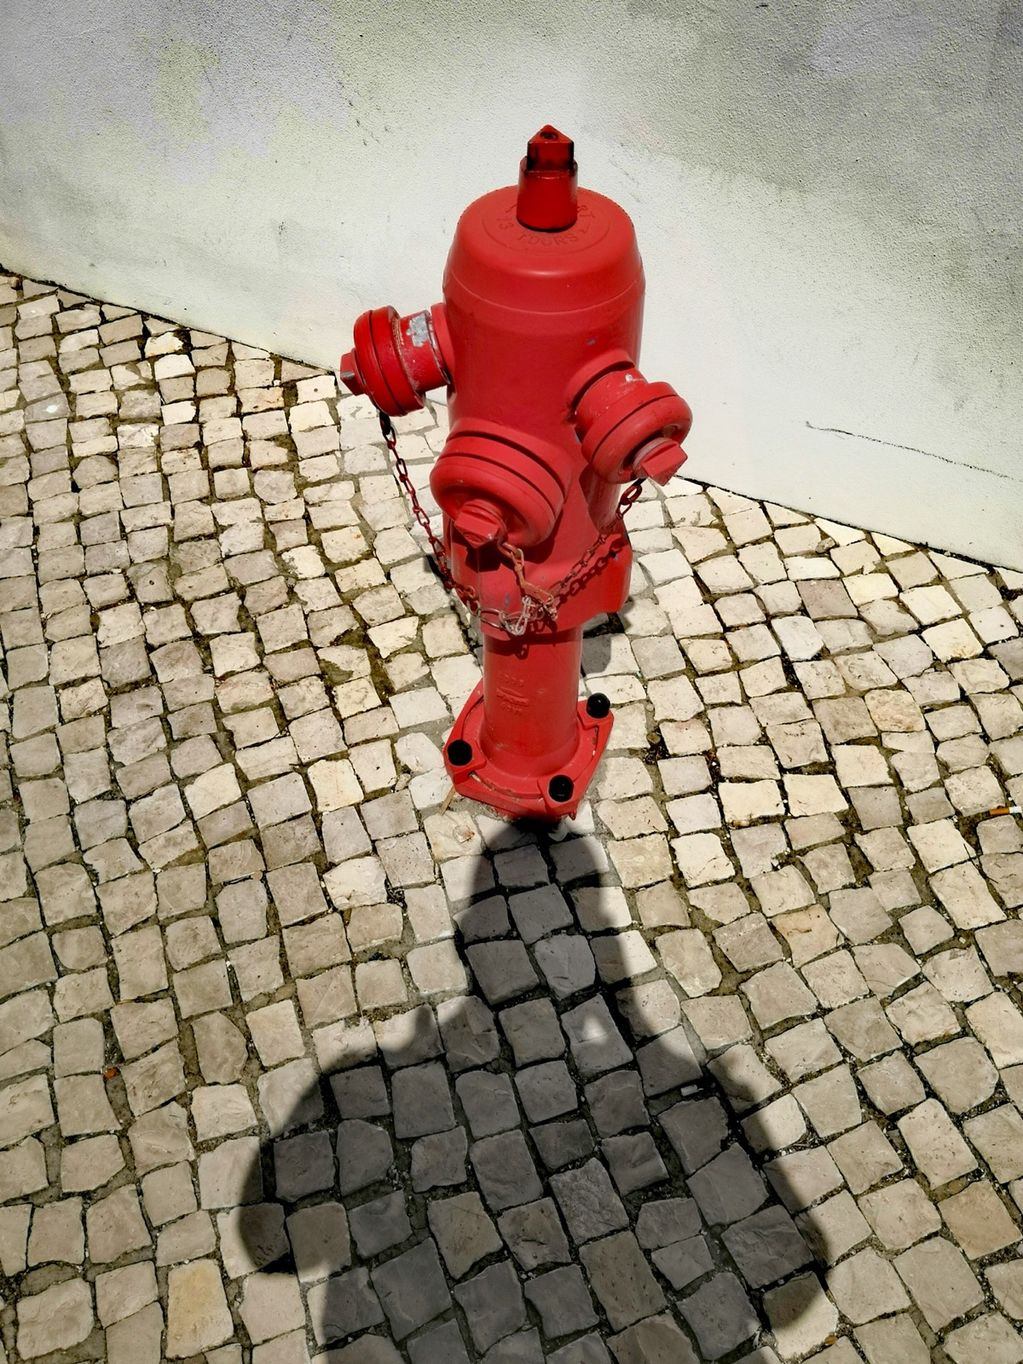 Self Portrait With Red Hydrant (Cascais) 2019